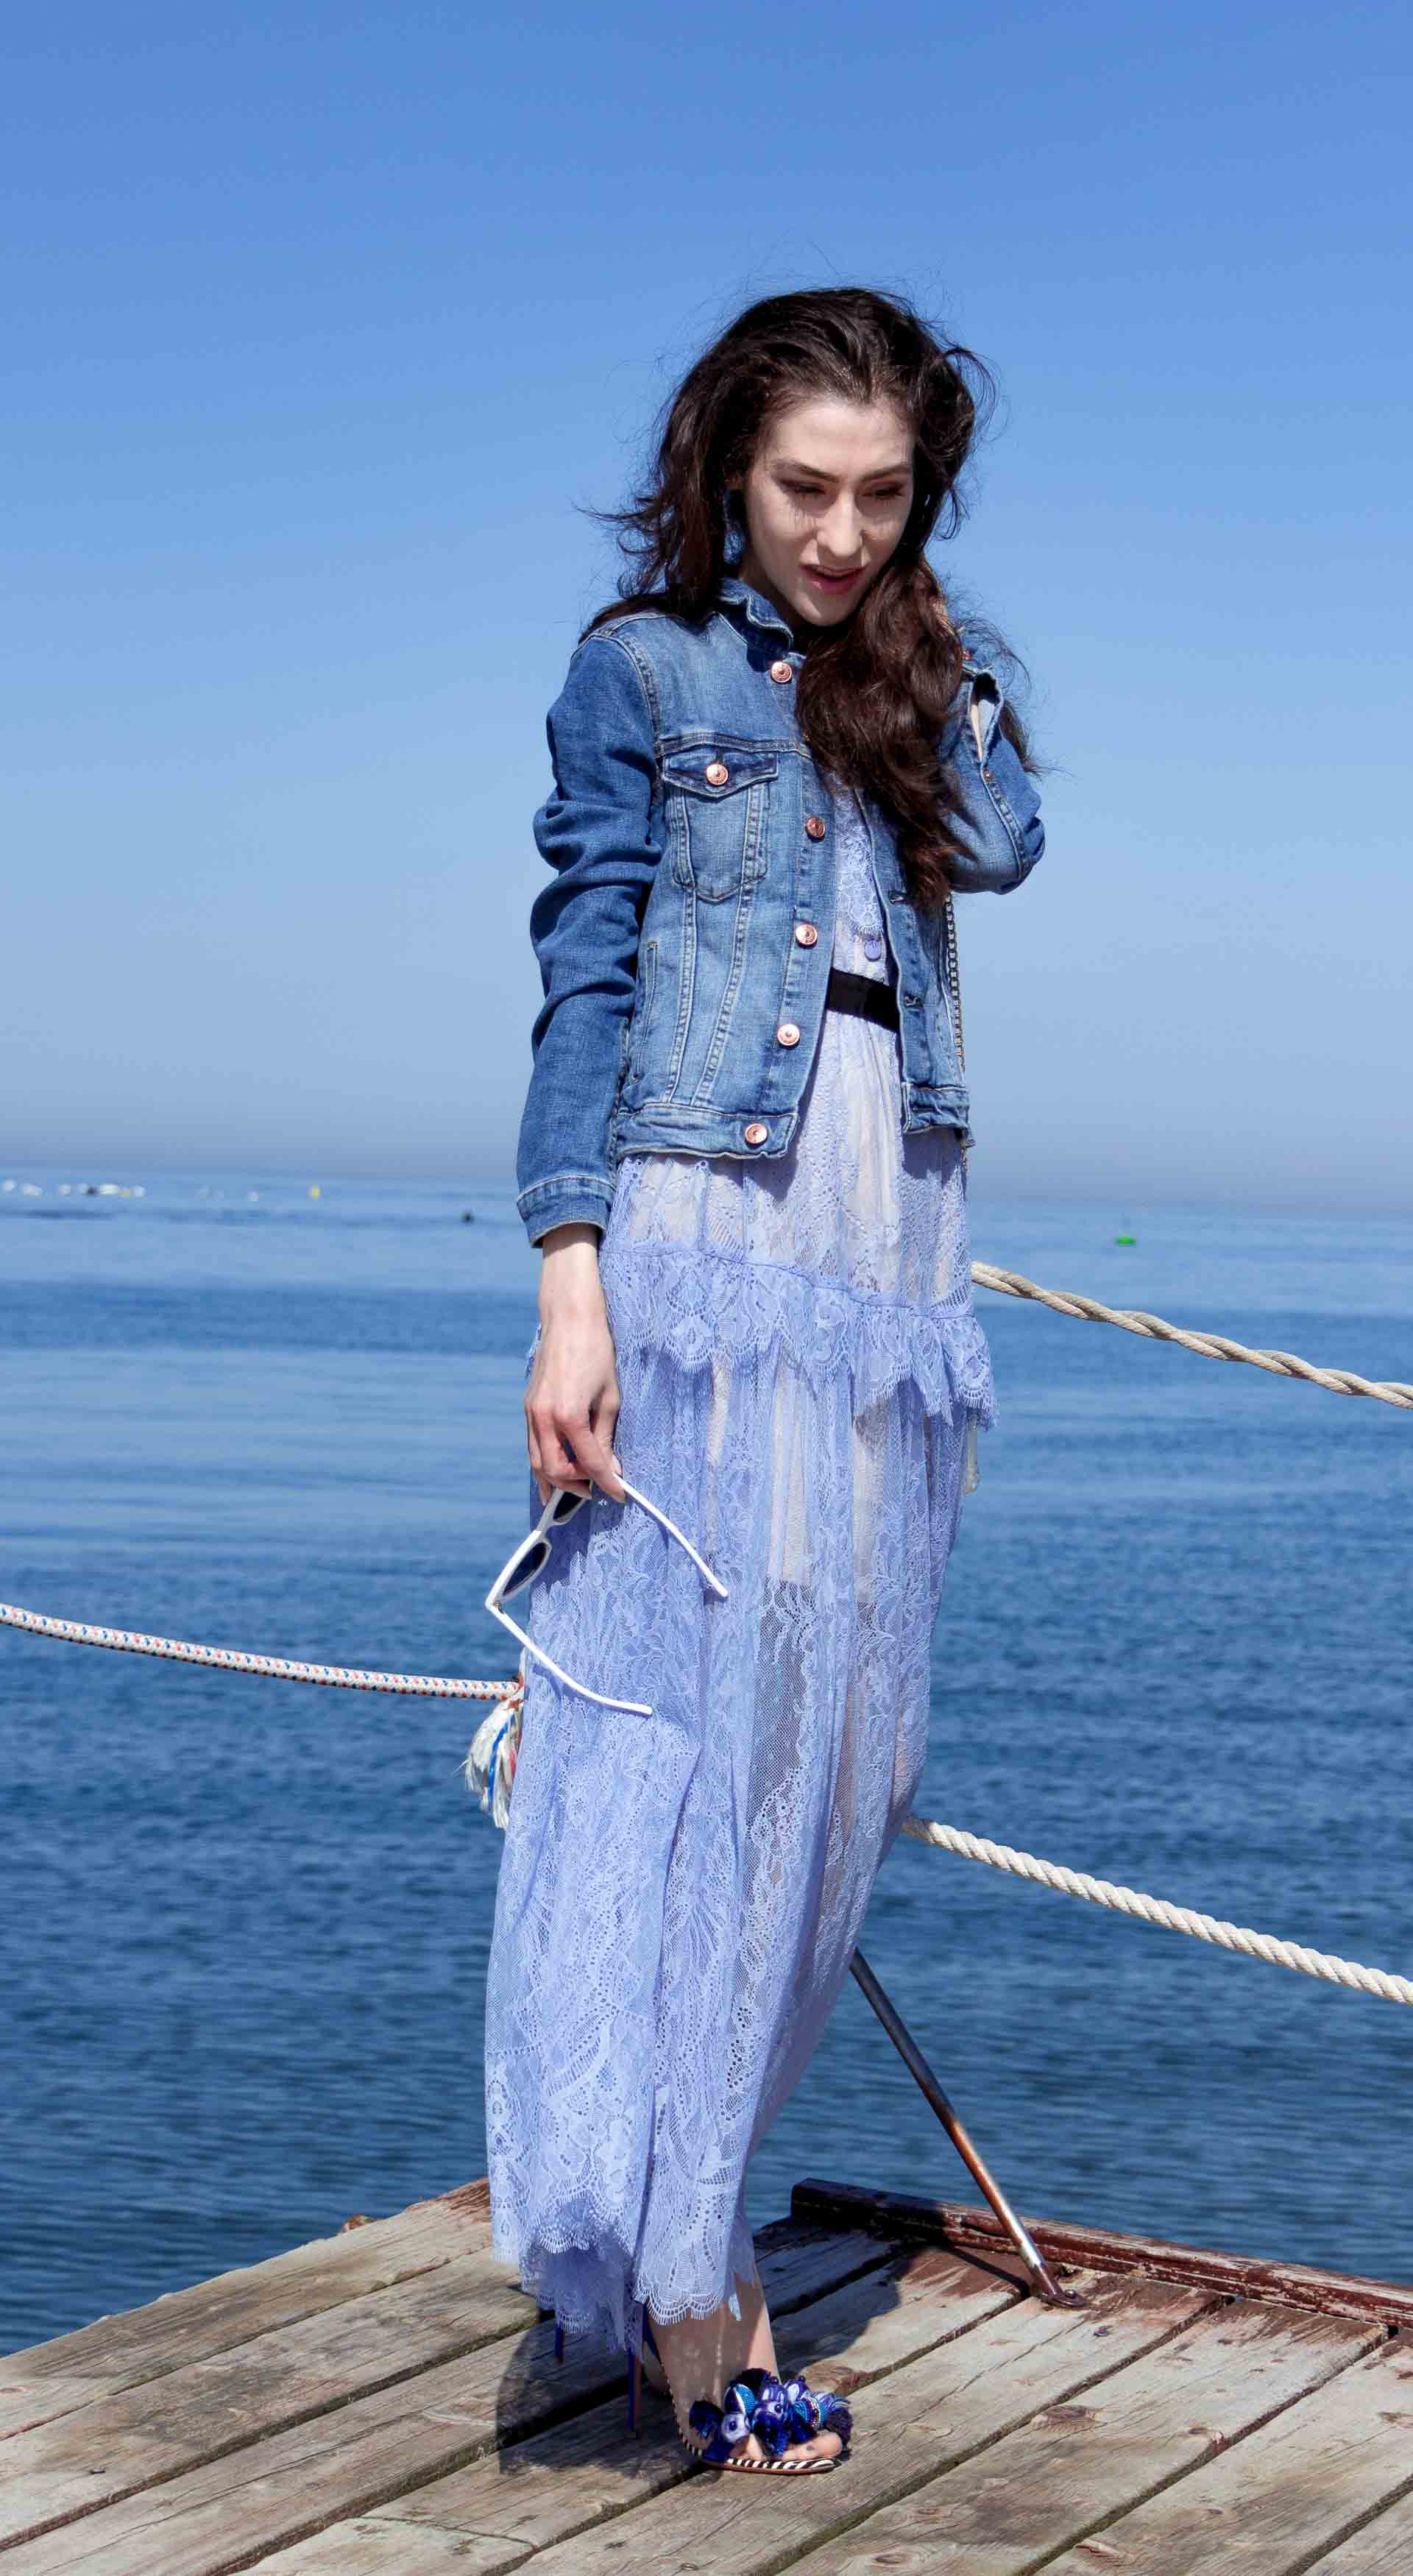 Veronika Lipar Fashion Blogger of Brunette from Wall Street dressed in blue off the shoulder midi lace dress from Self-Portrait, H&M blue denim jacket, white chain shoulder bag, Aquazzura blue pom pom tassels sandals, white Lolita cat-eye sunglasses on romantic summer date